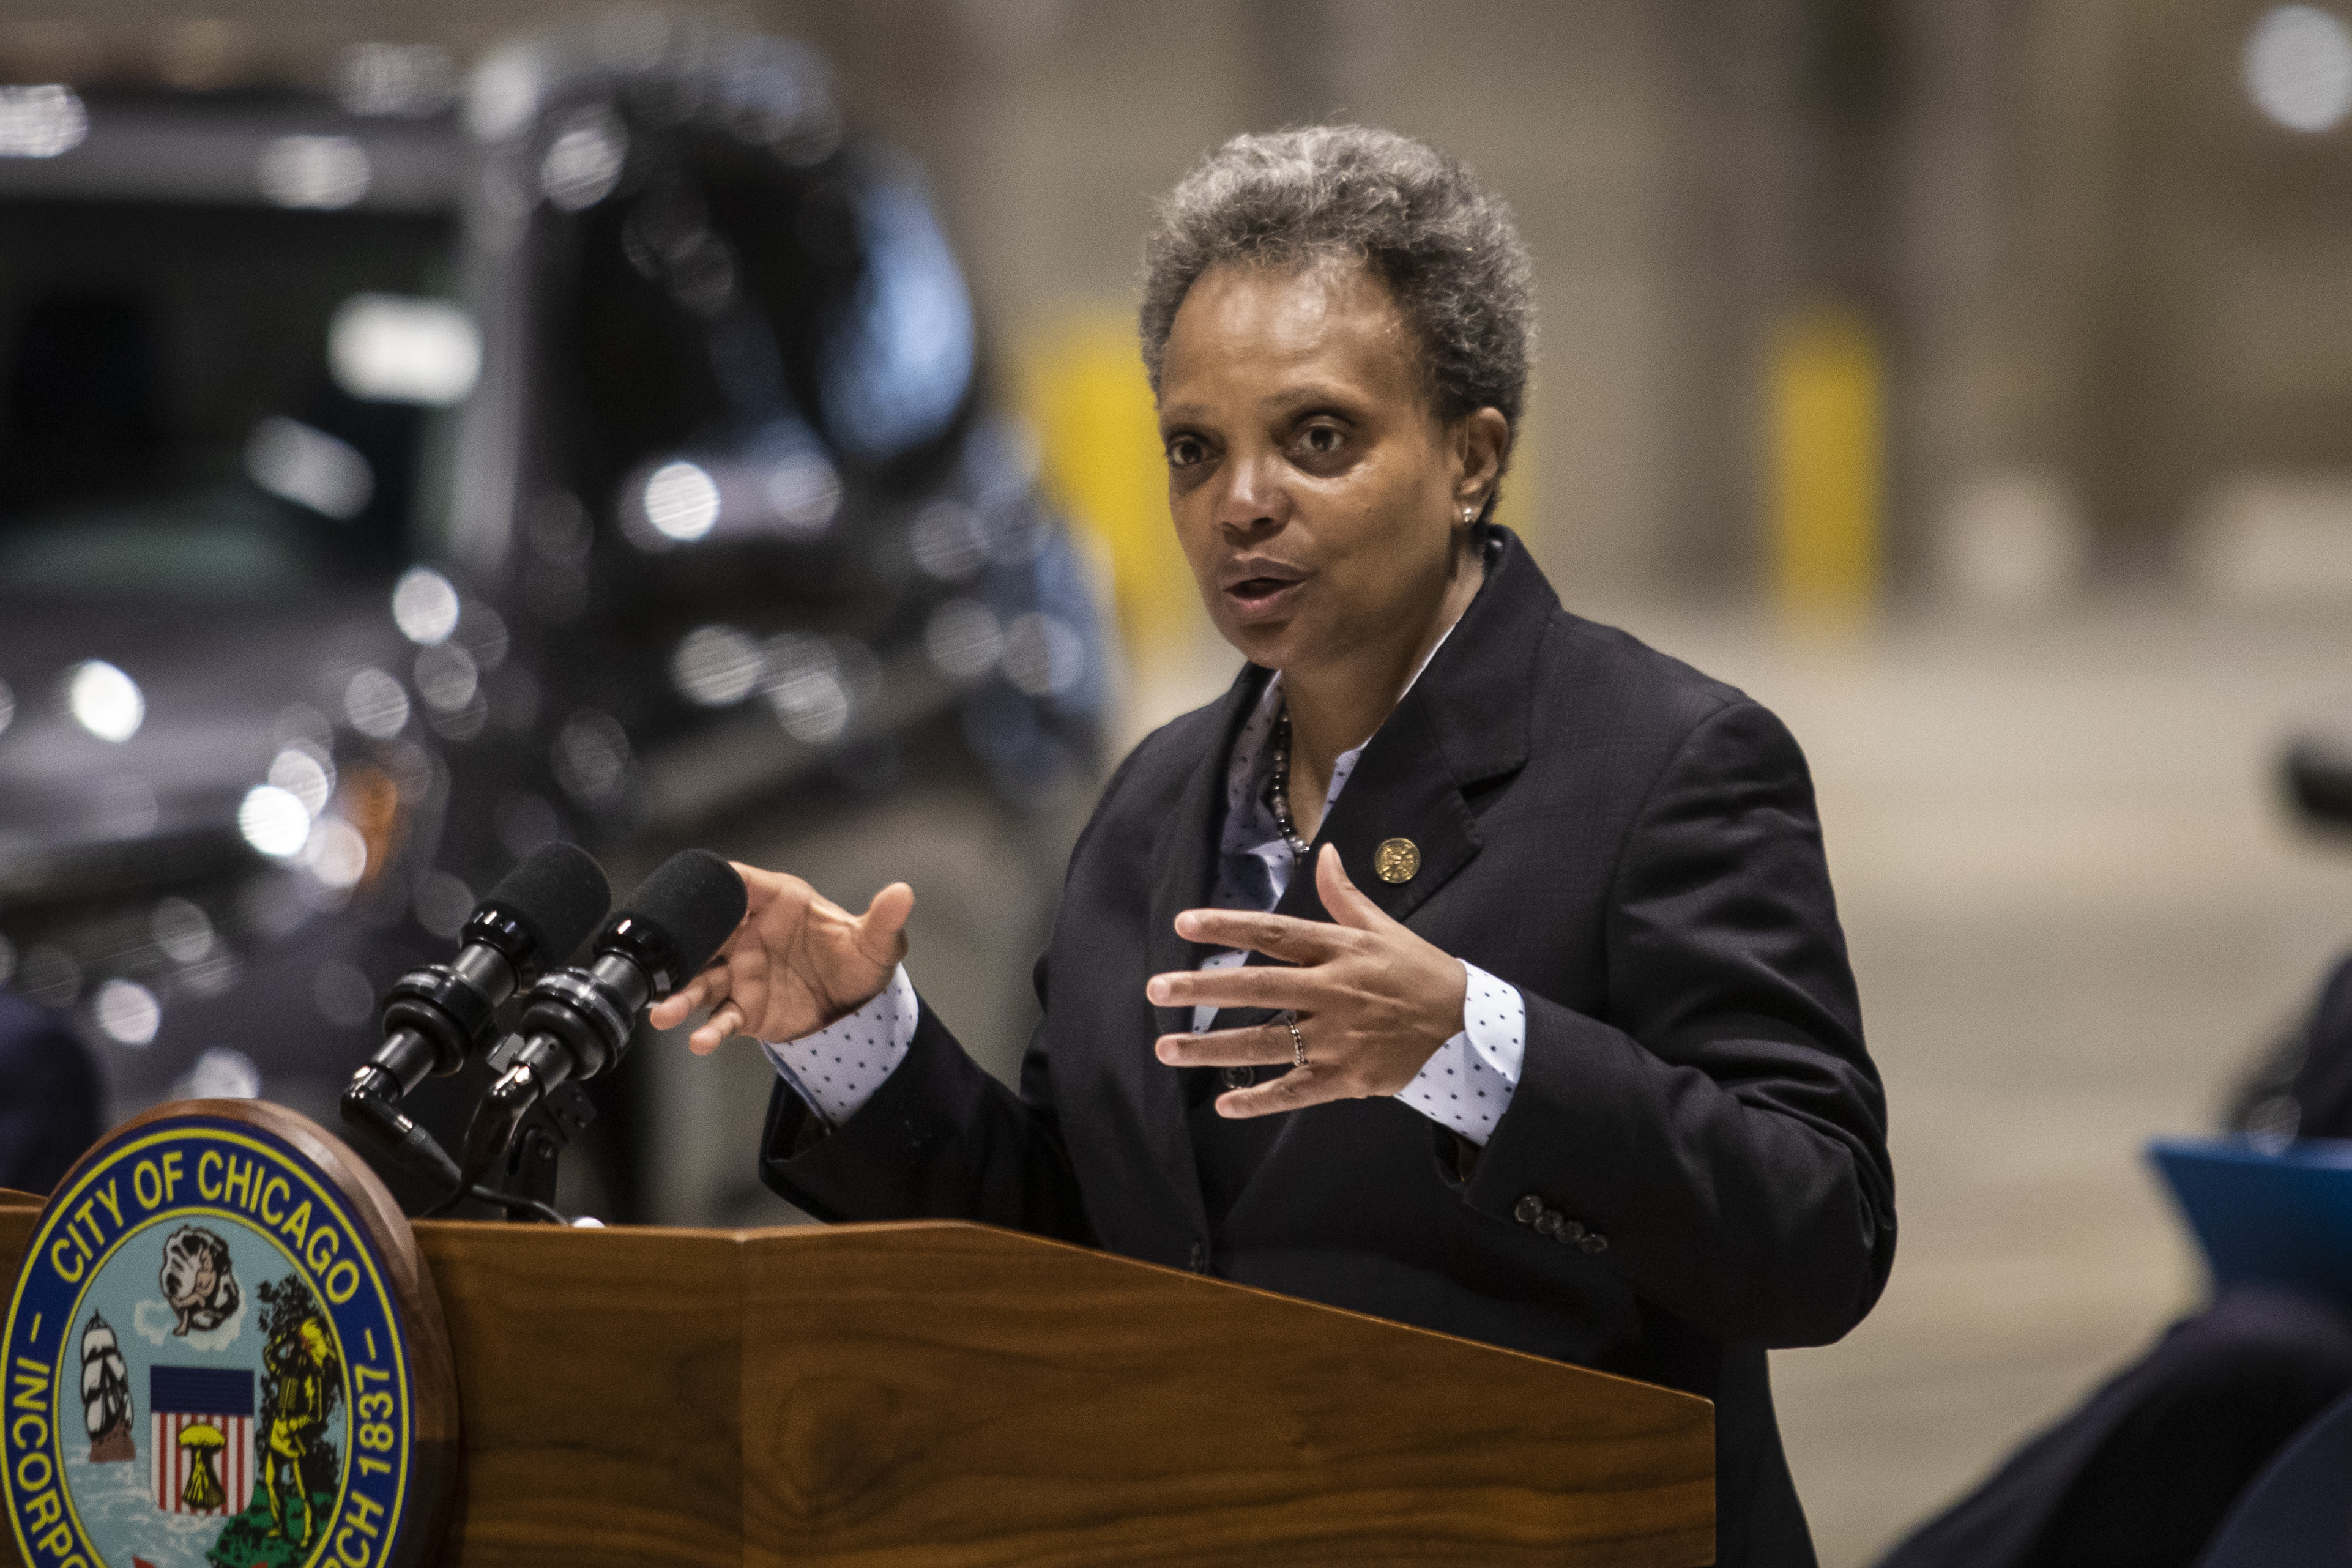 Mayor Lori Lightfoot announces the Chicago Auto Show will take place in July during a news conference on Chicago's reopening efforts at McCormick Place on Tuesday morning, May 4, 2021.